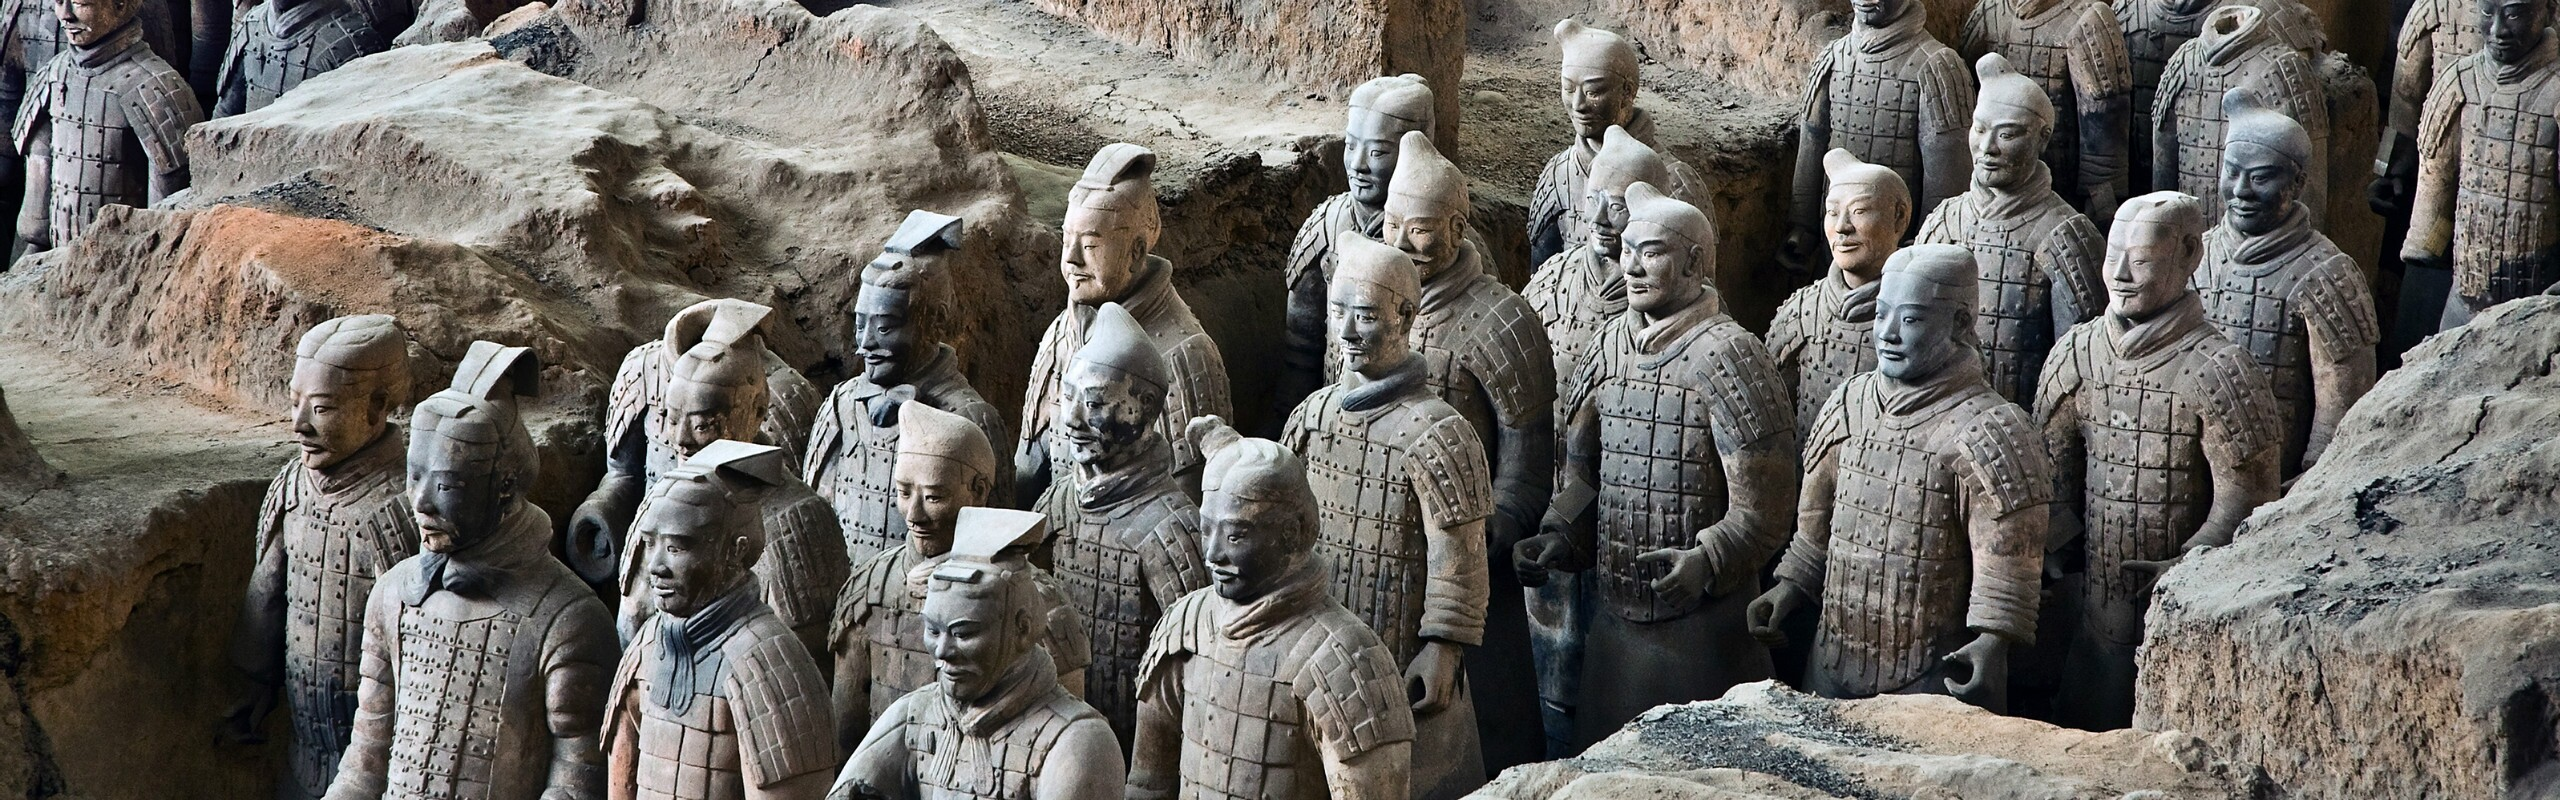 3-Day Xi'an Tour with Must-see Attractions and Unique Experiences